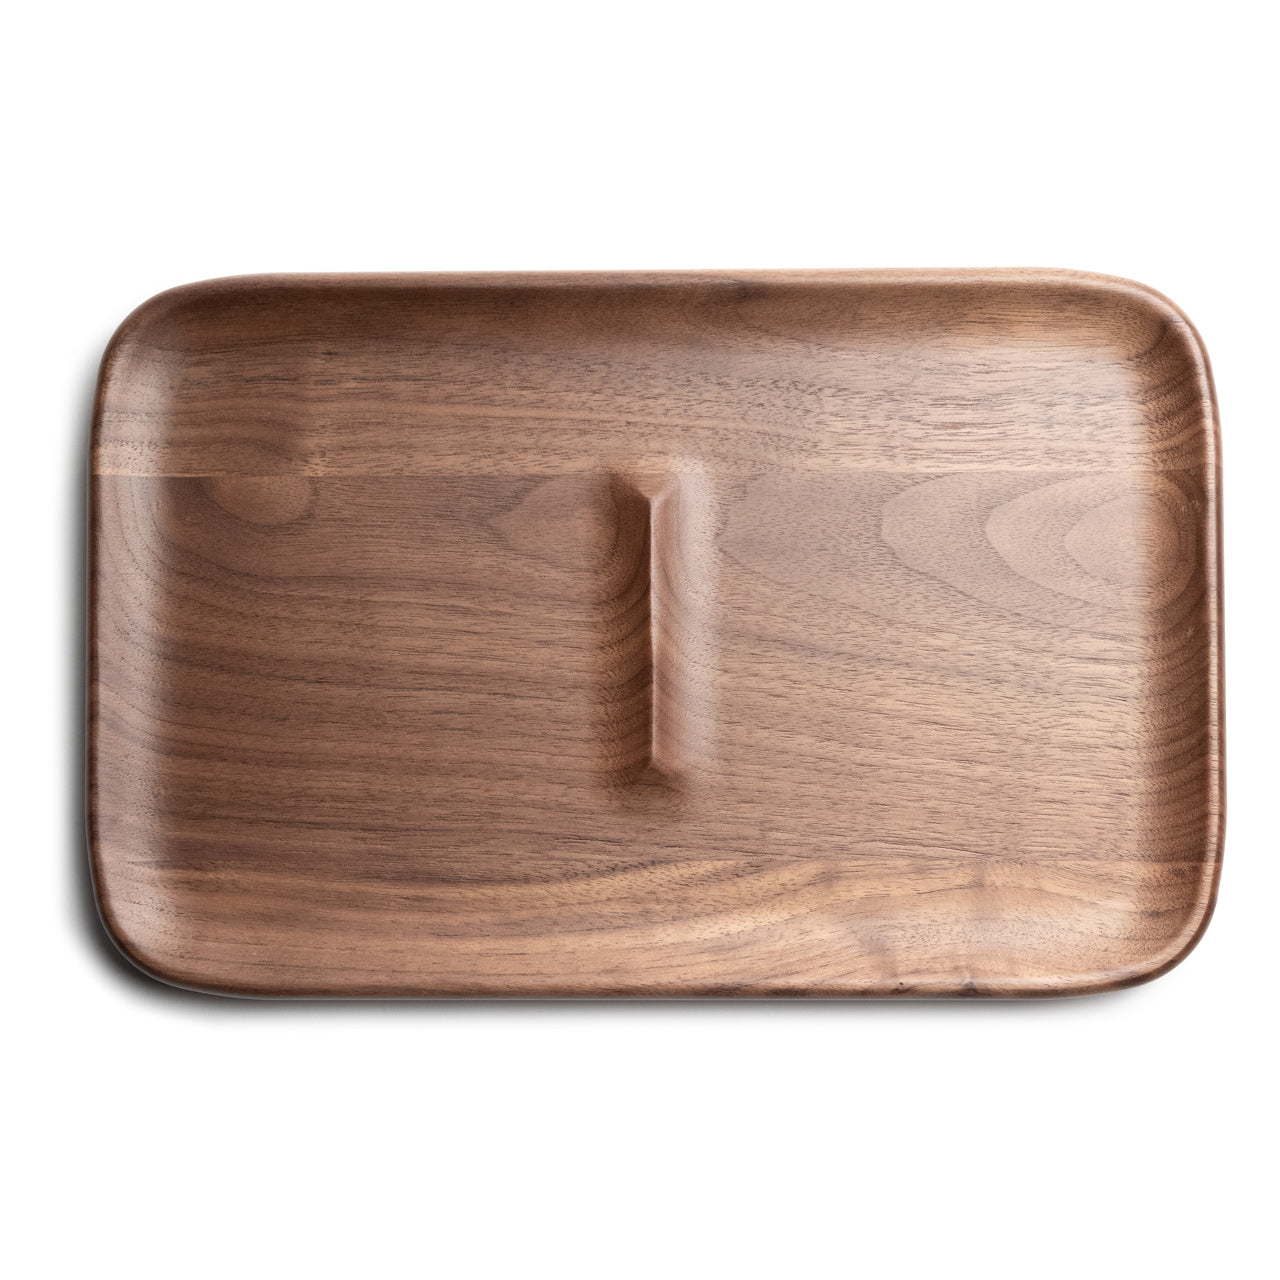 Walnut Valet Tray